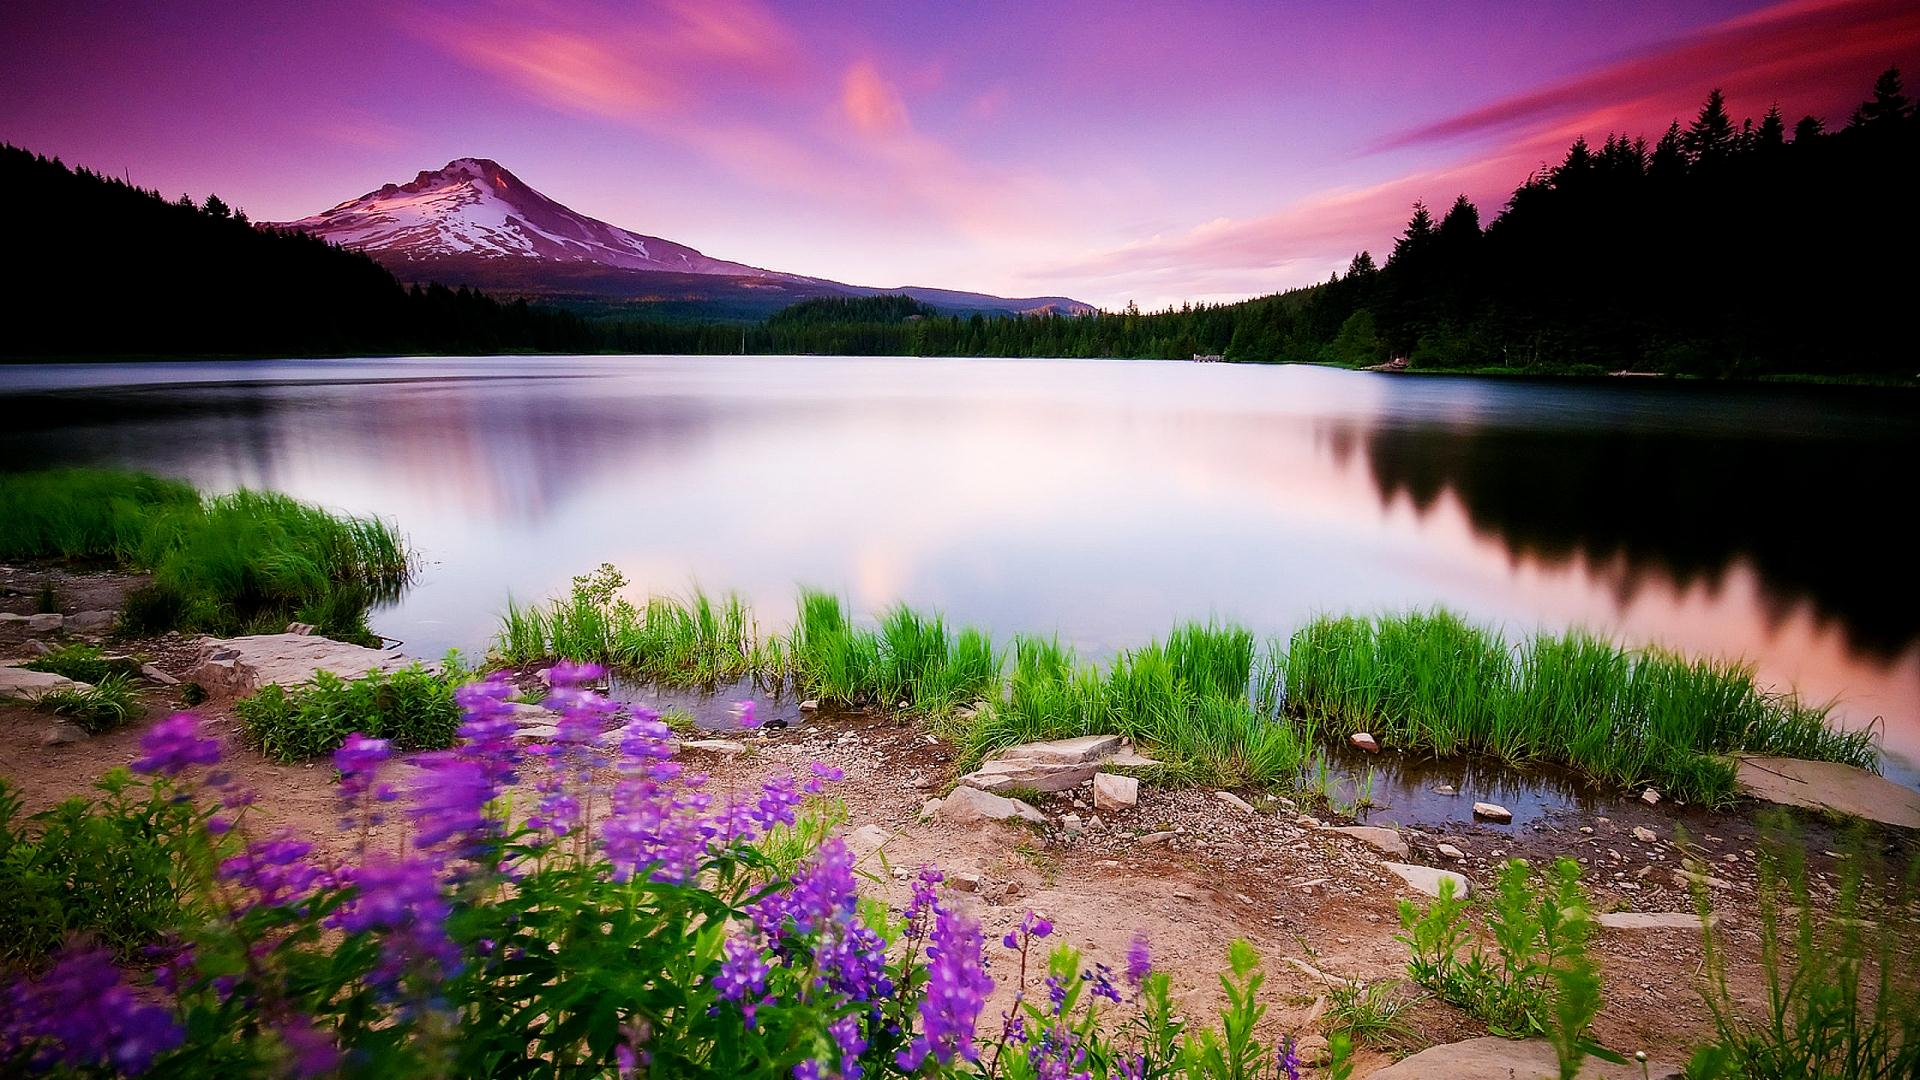 Mountain Nature HD Wallpaper For Wide Background